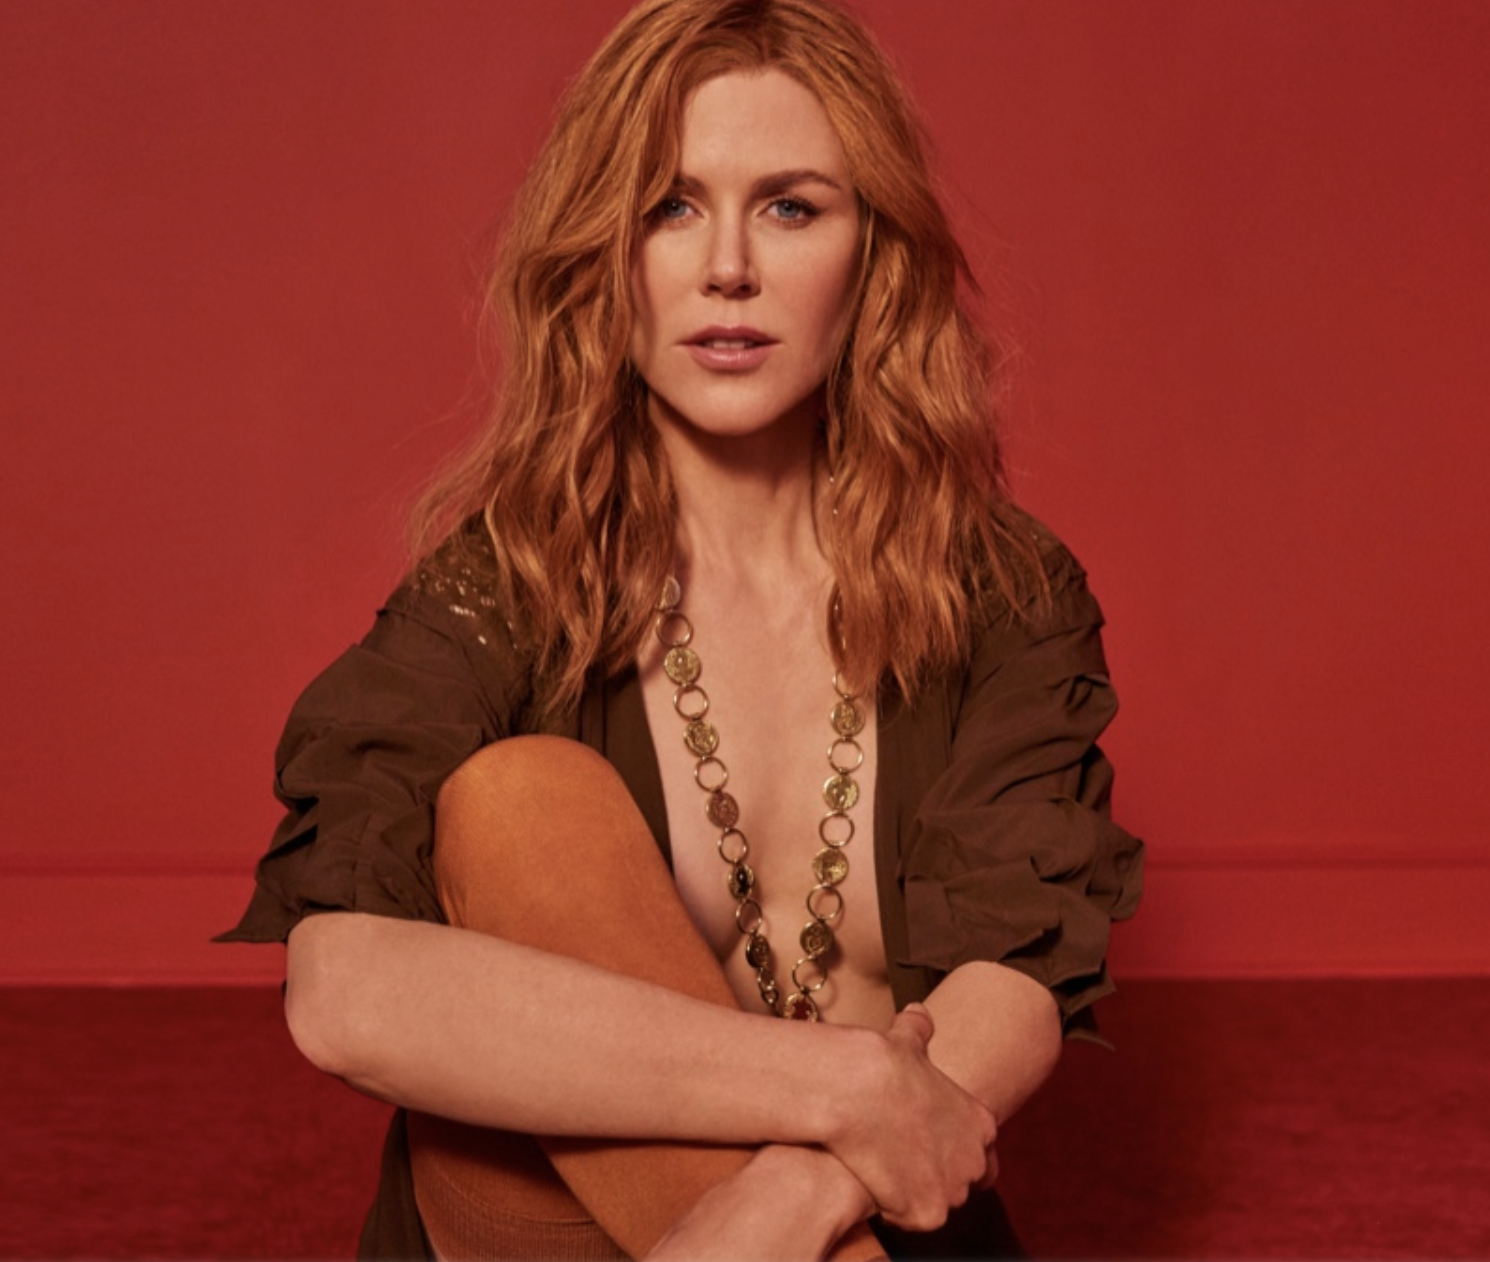 Nicole Kidman in the New Issue of Marie Claire [NSFW PICS]